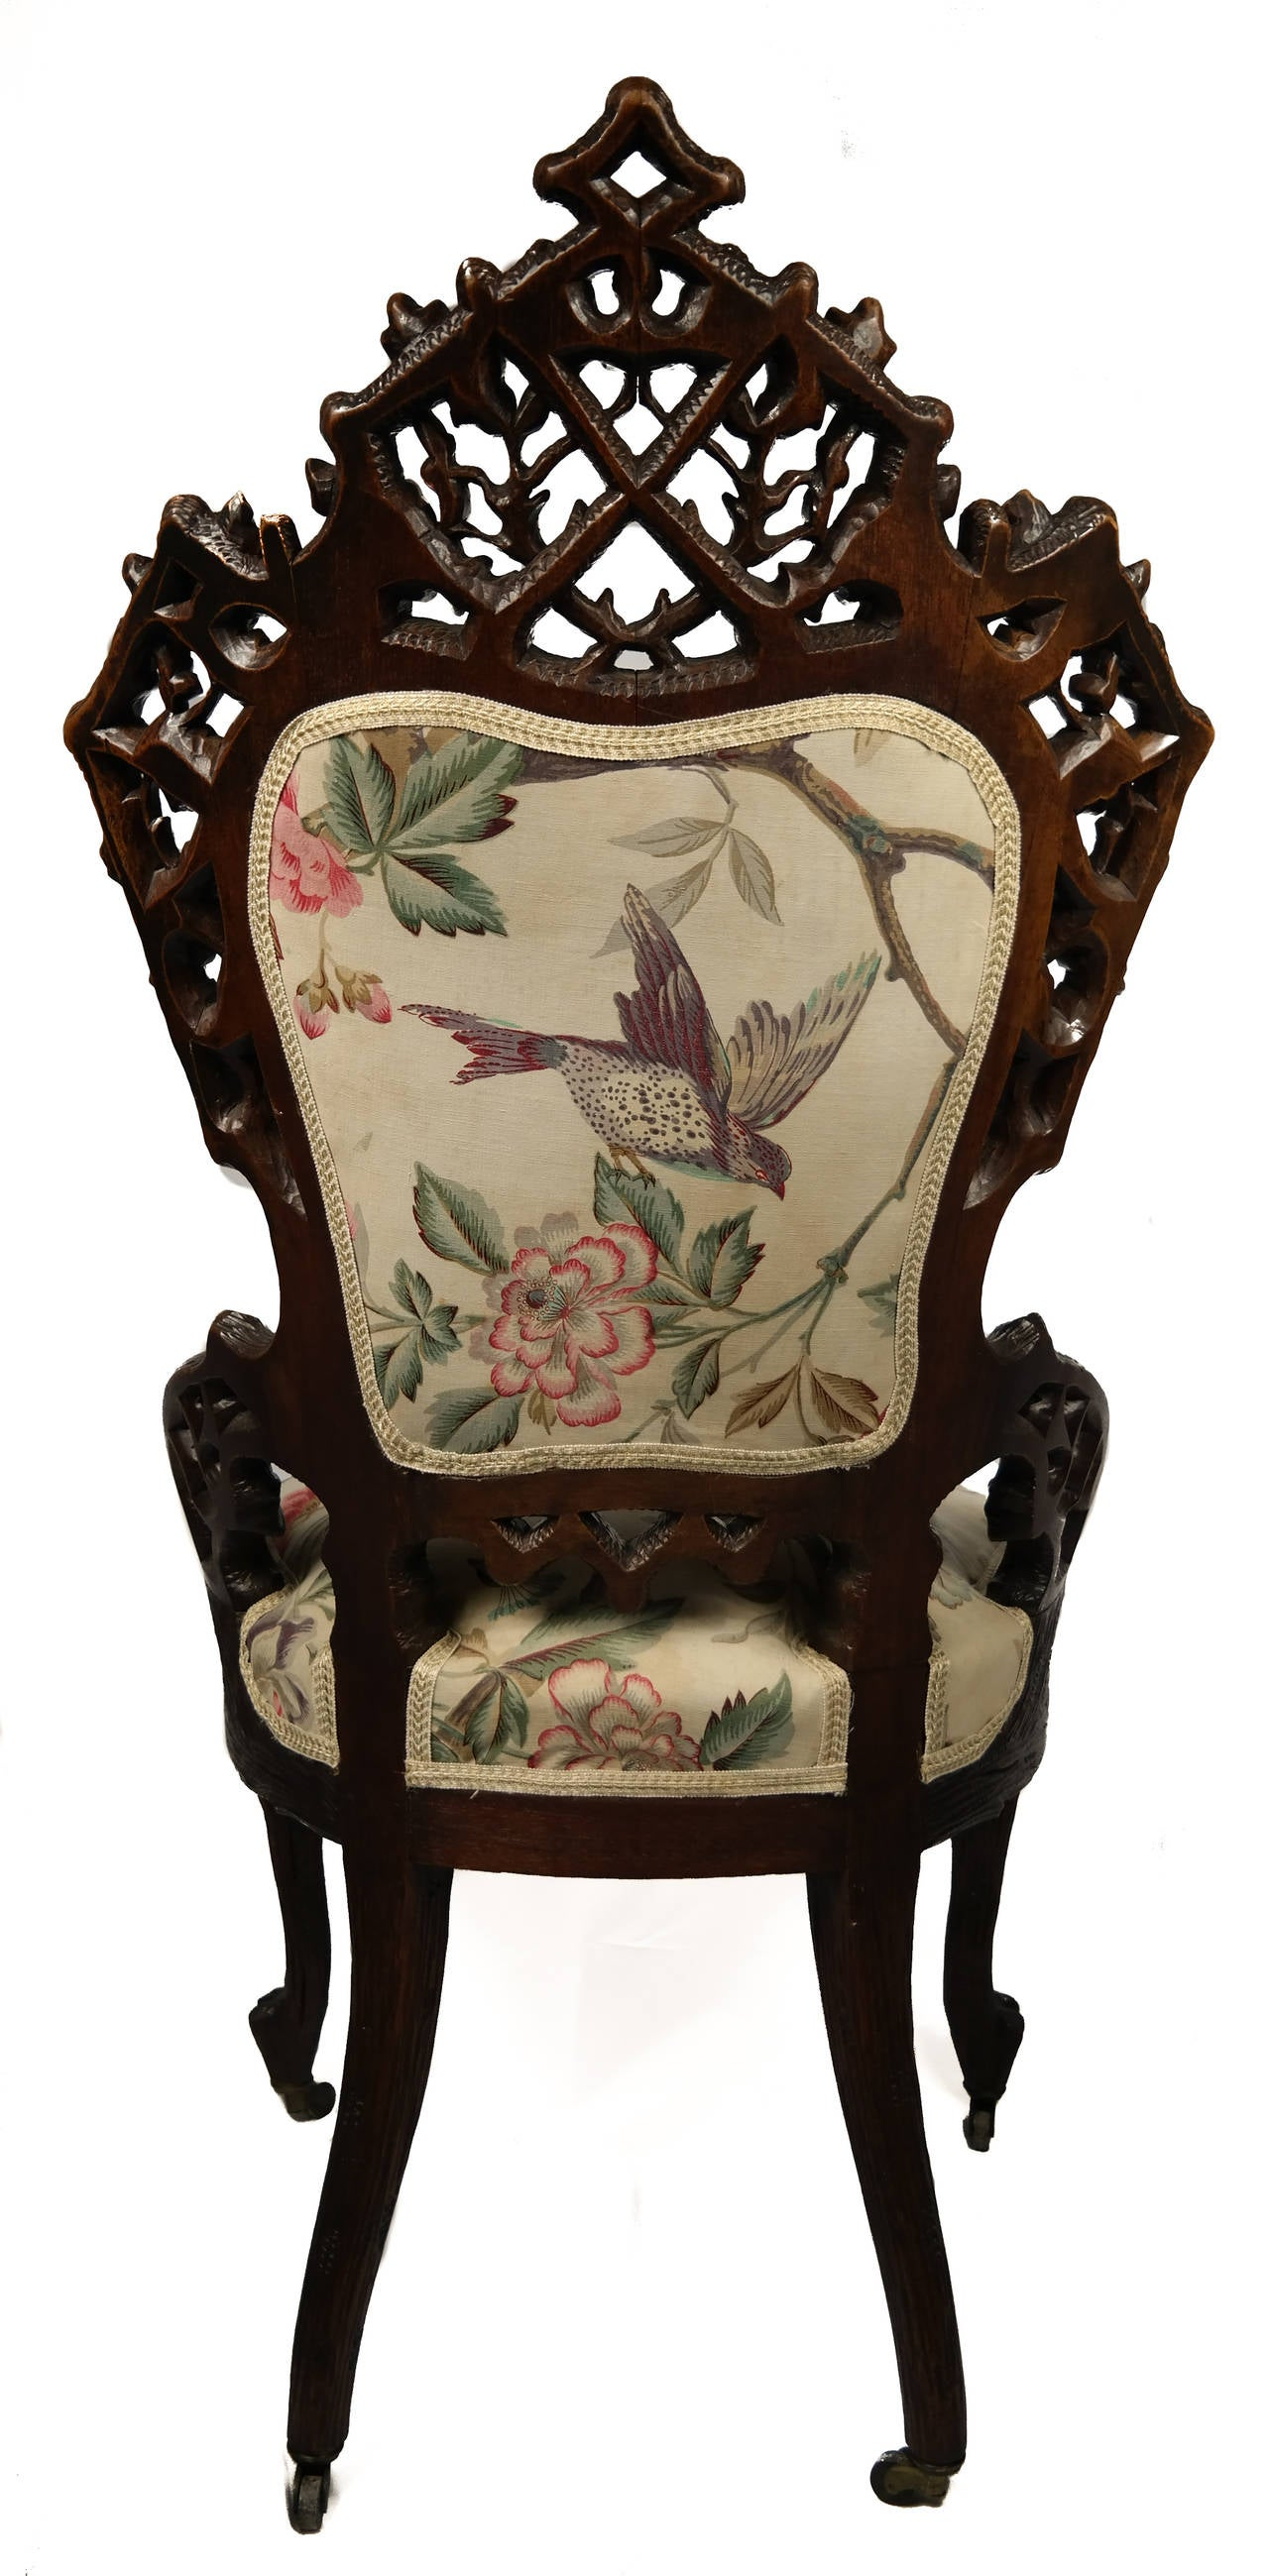 Black Chairs For Sale Black Forest Chair For Sale At 1stdibs